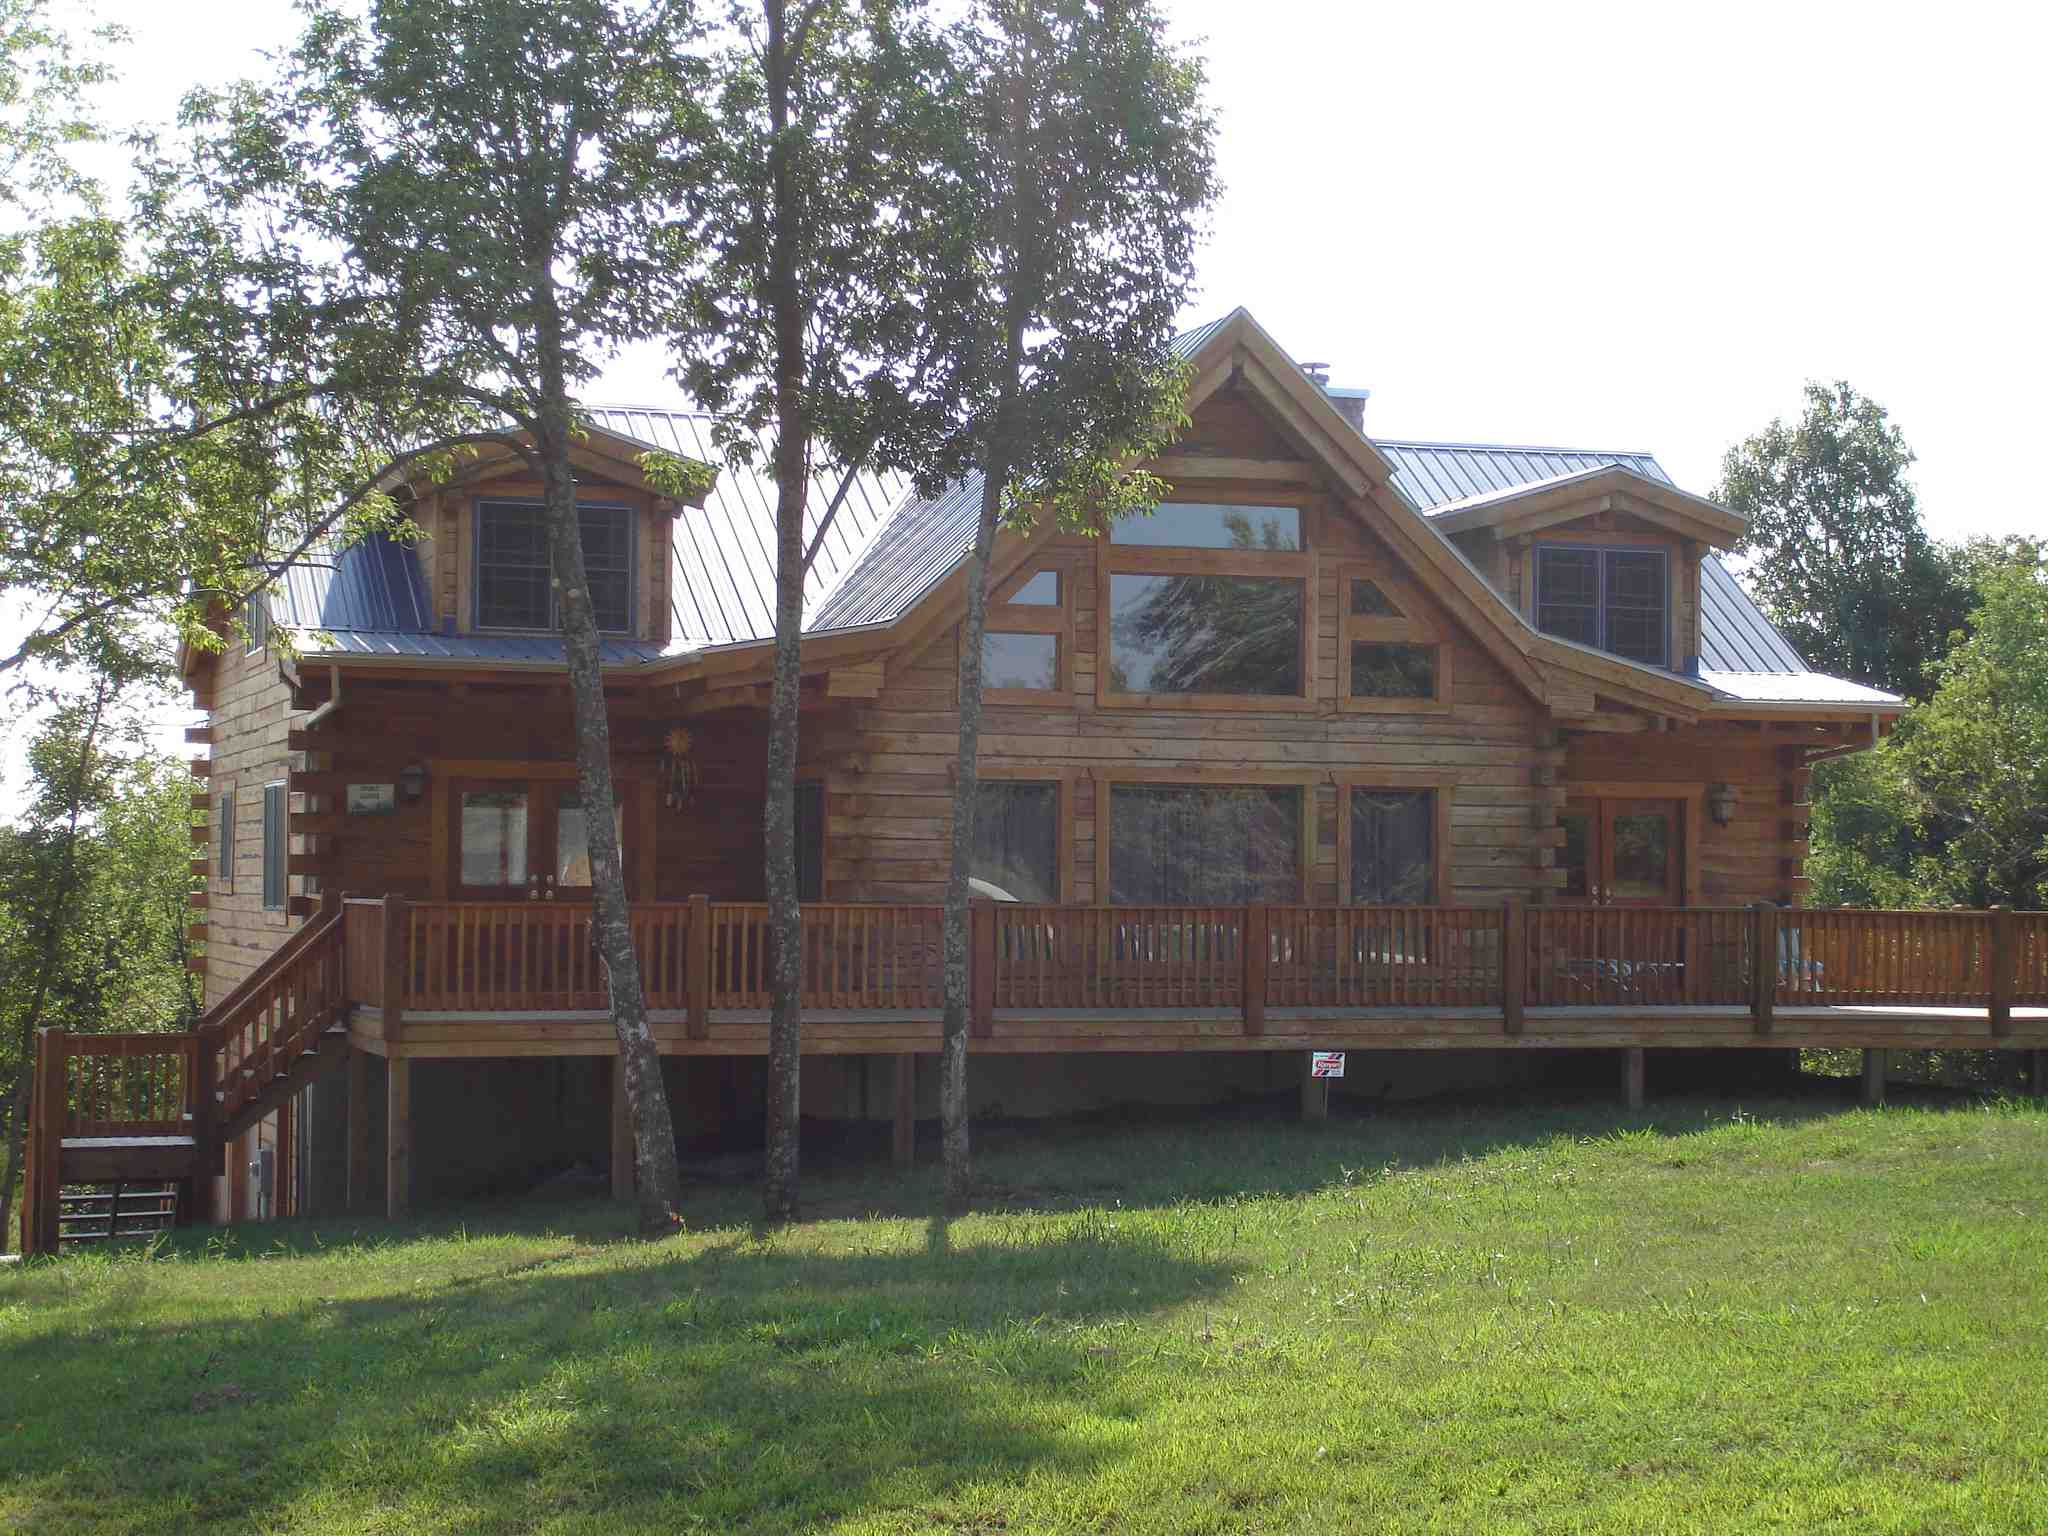 Schutt Log Homes And Millworks Announces 5 Off Solid Oak